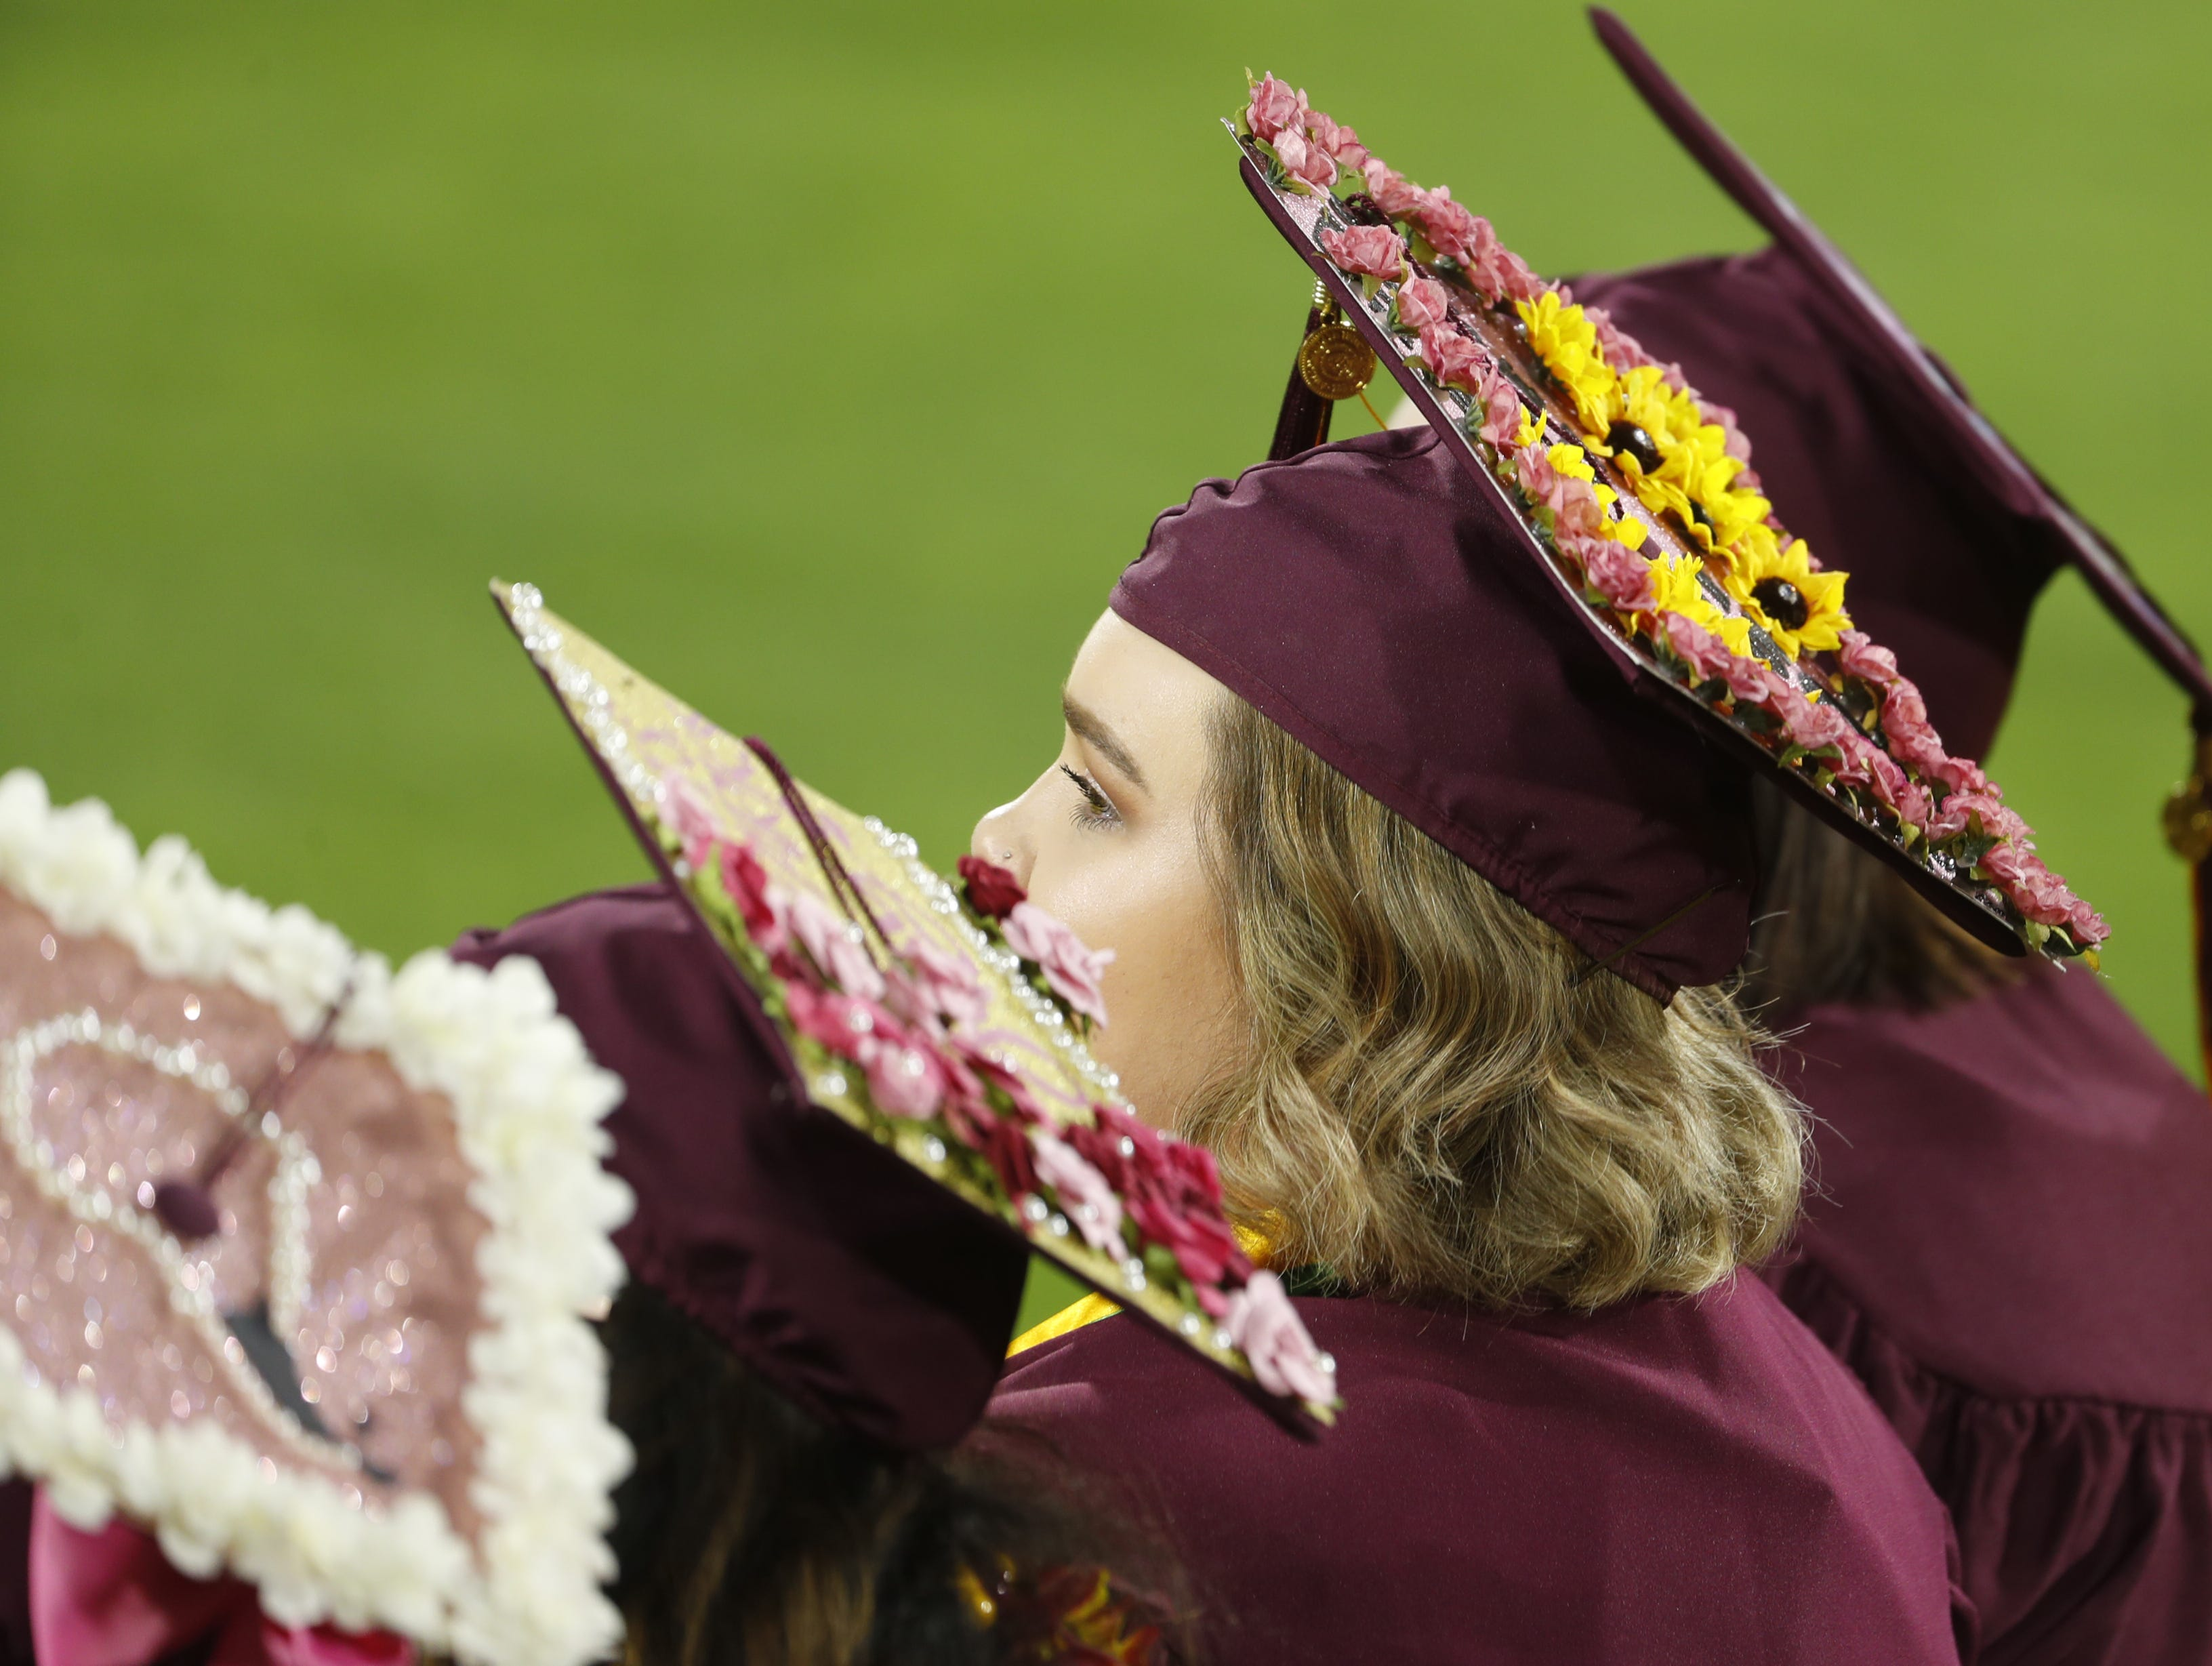 ASU students watch President Michael Crow speak during ASU's Undergraduate Commencement at Sun Devil Stadium in Tempe, Ariz. on May 6, 2019.